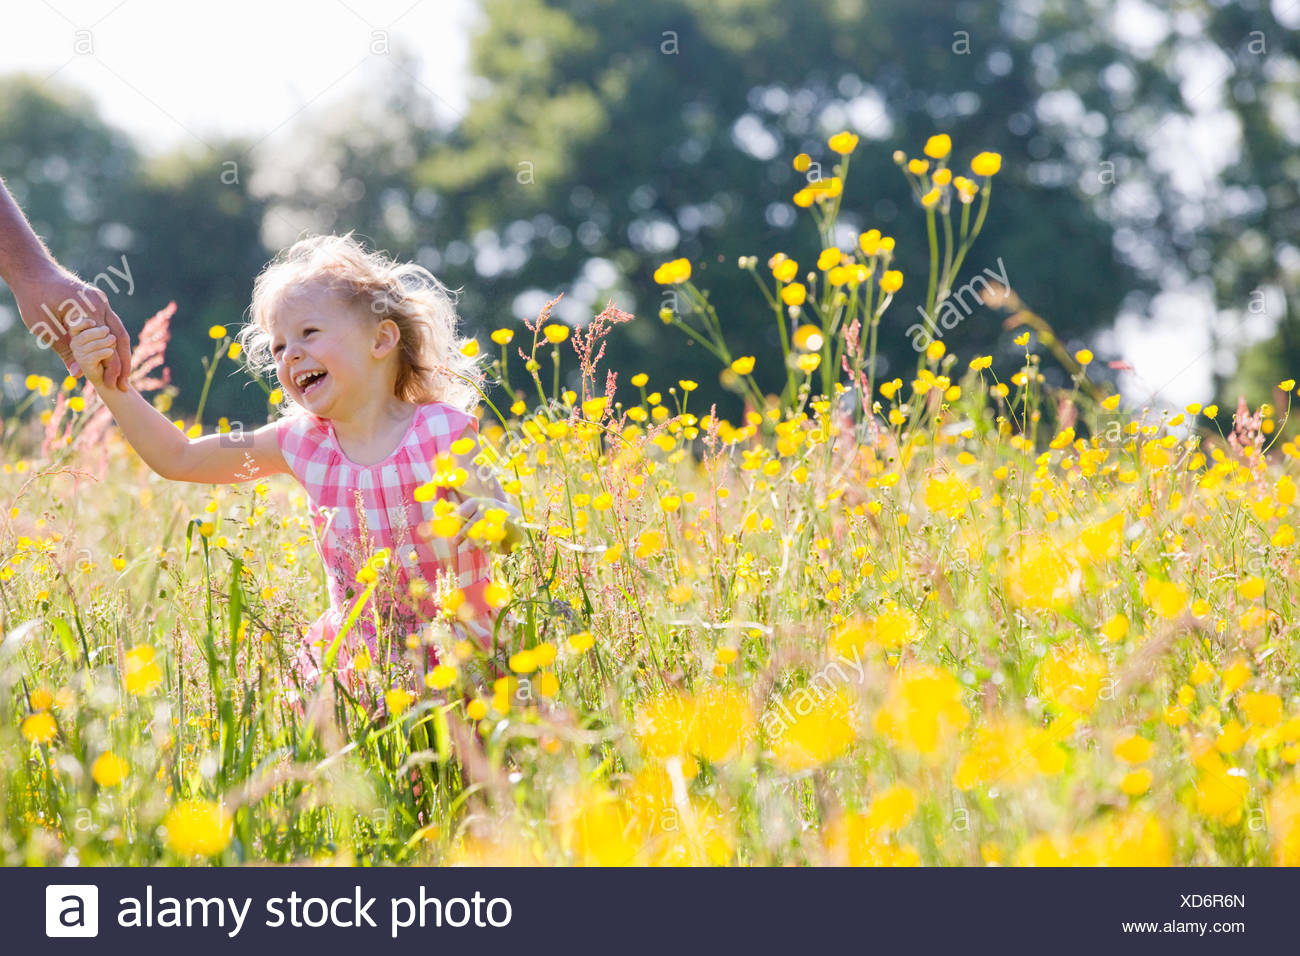 Portrait of smiling young girl holding fathers hand in wildflower meadow Stock Photo